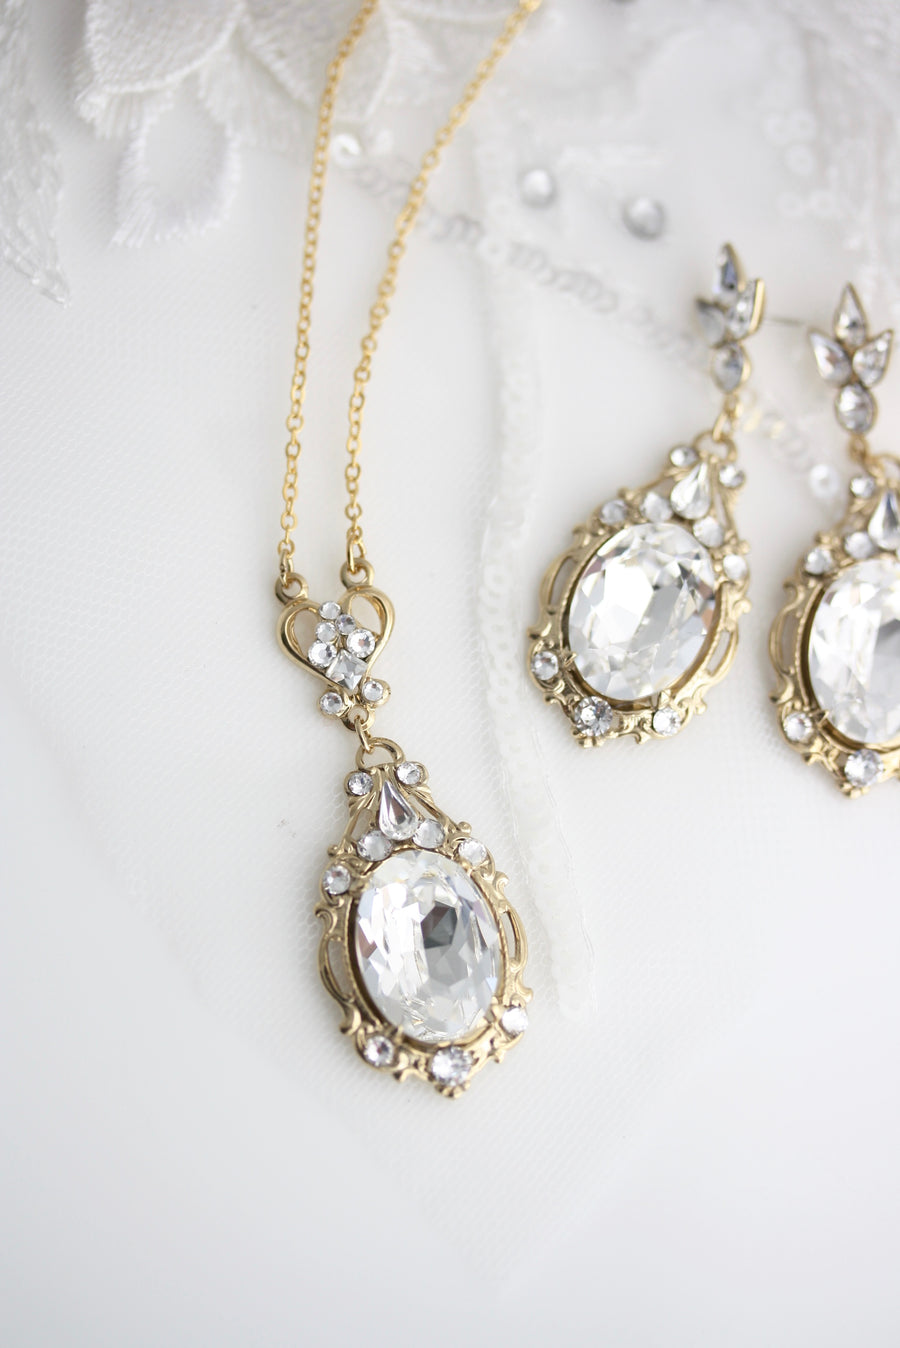 Ryan Crystal Earrings and Necklace Set